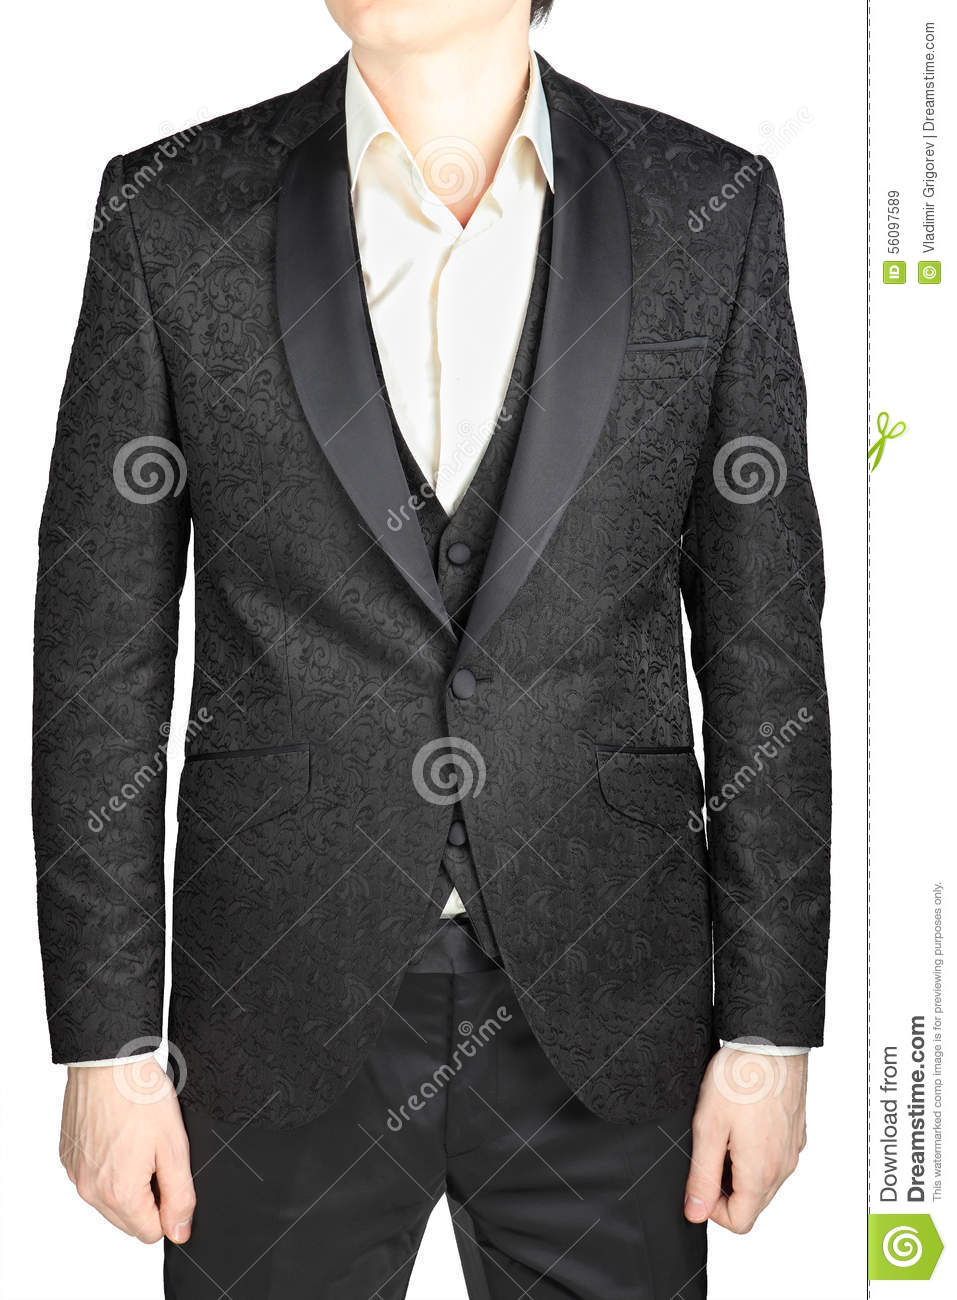 Black Patterned Wedding Bridegroom Suit, Without Tie, Isolated O ...